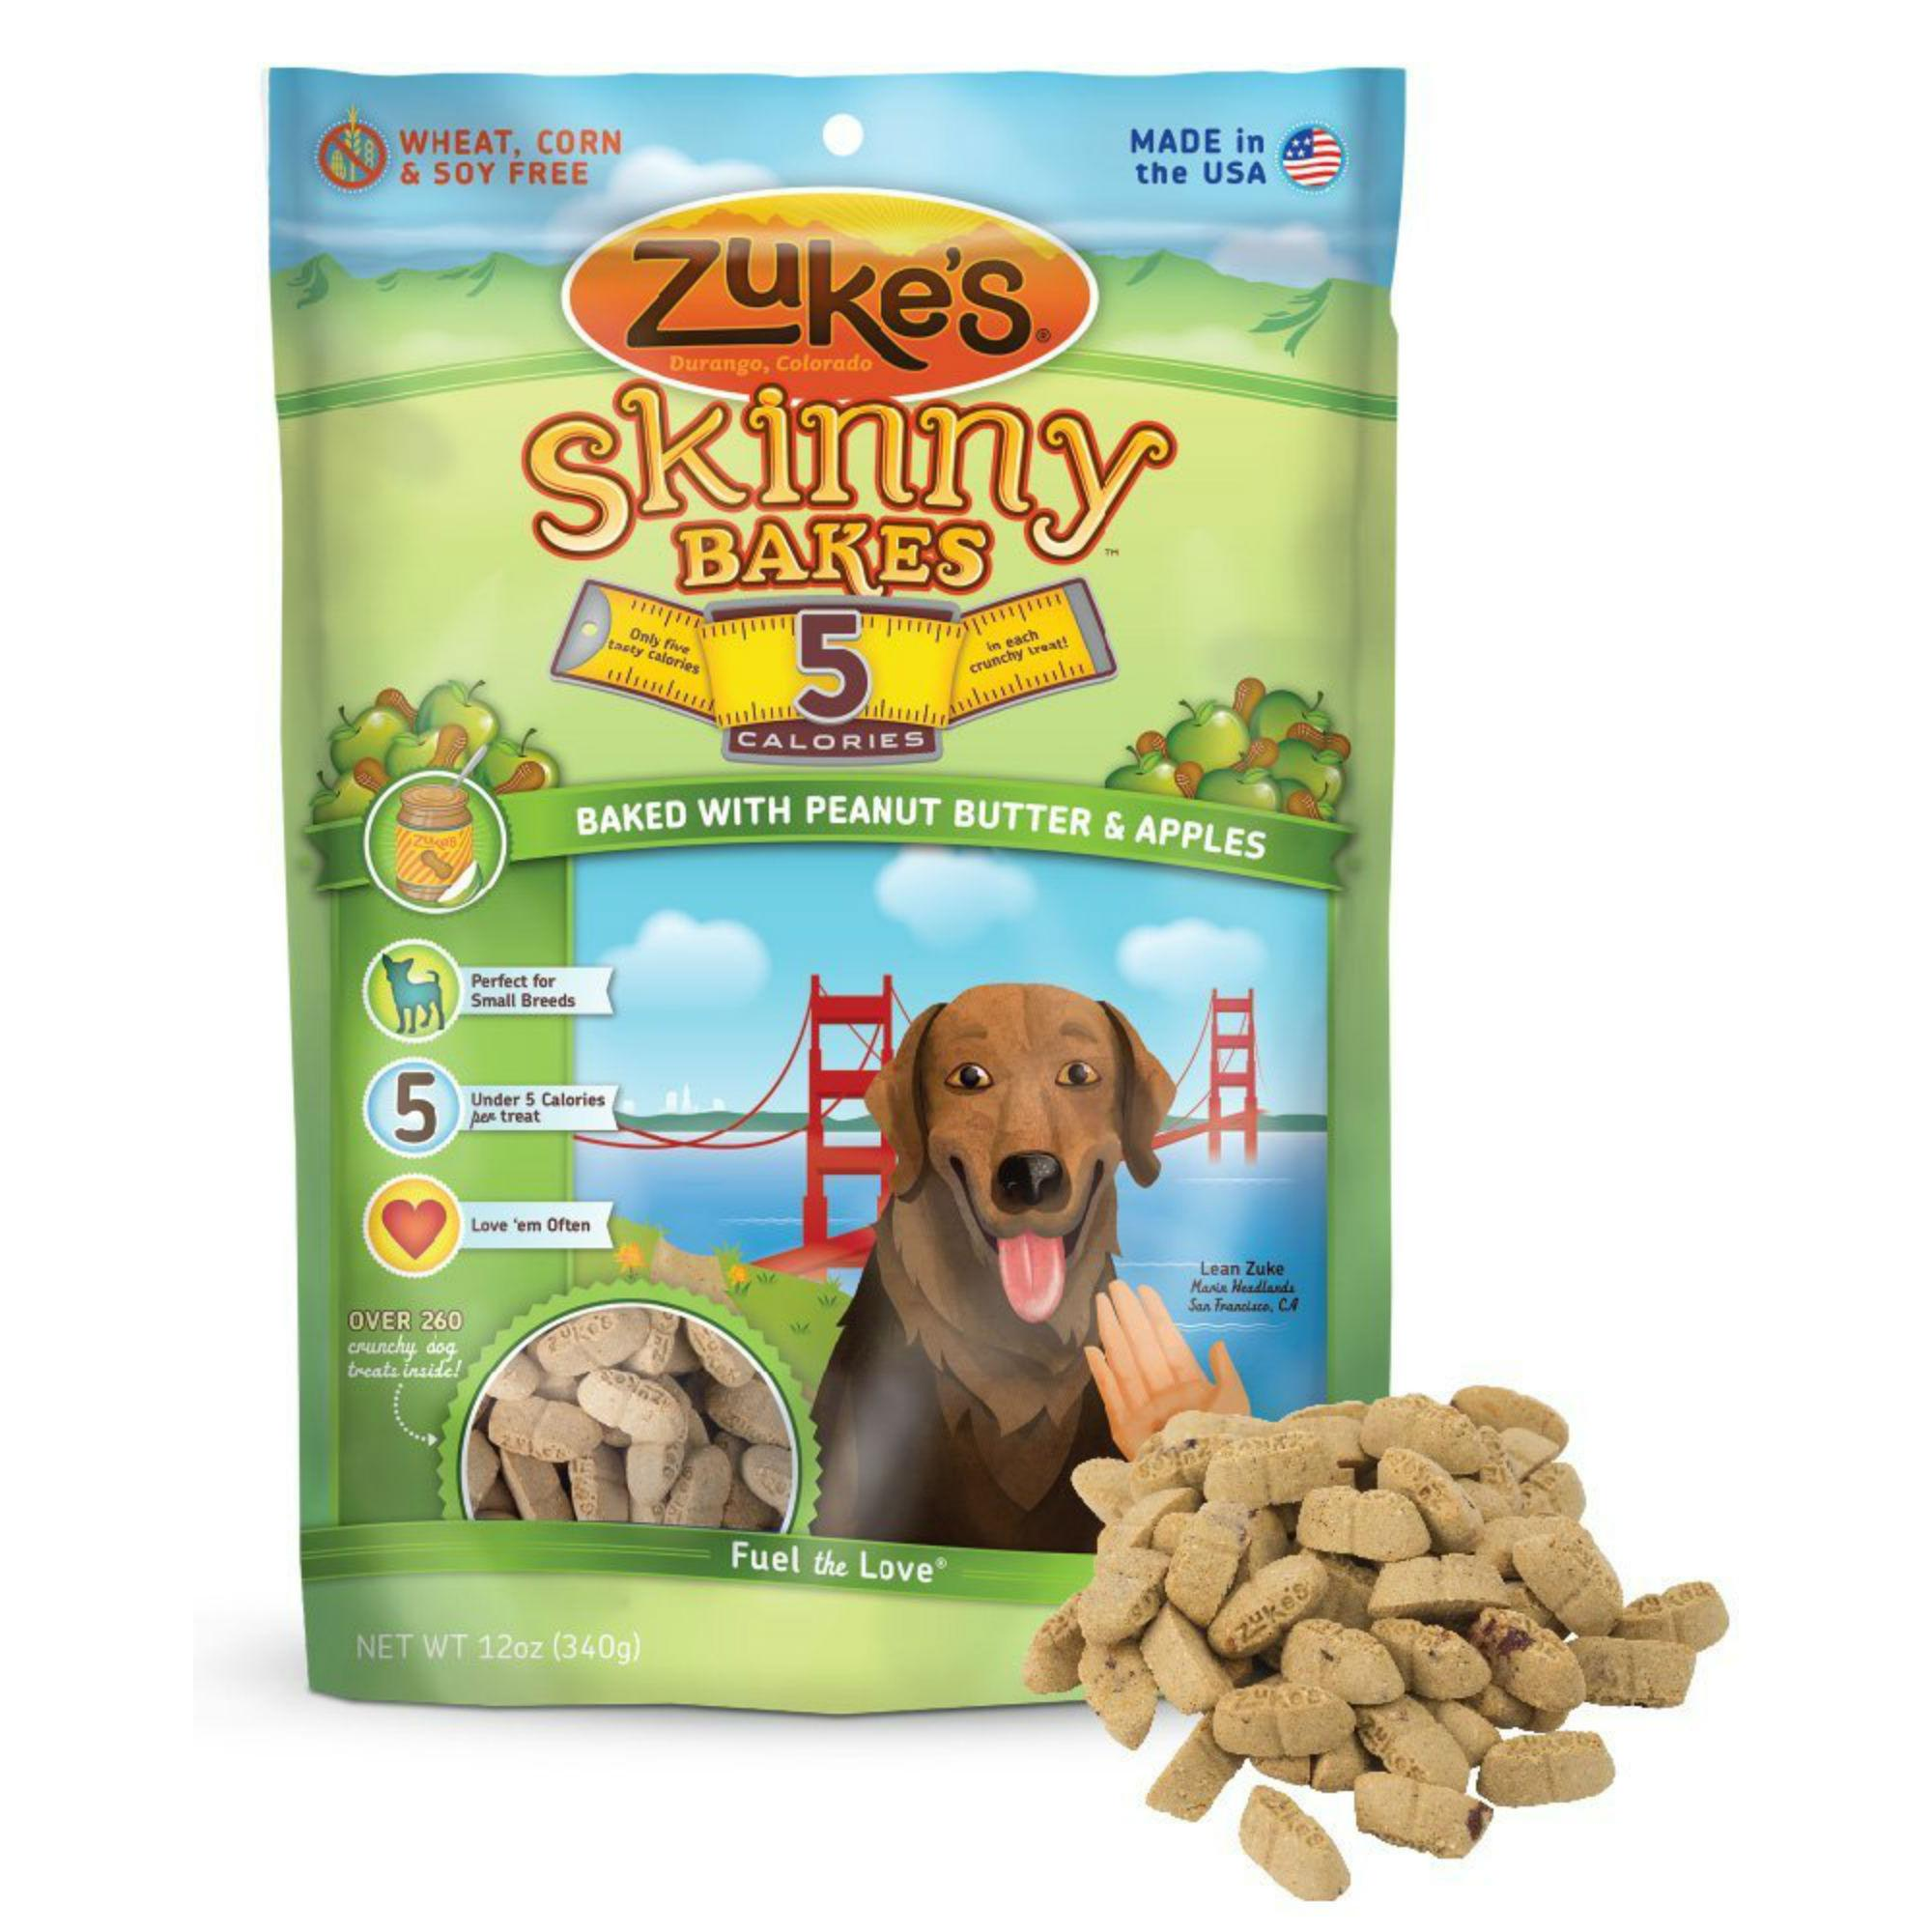 Zukes Skinny Bakes Dog Treat - Apple/Peanut Butter with